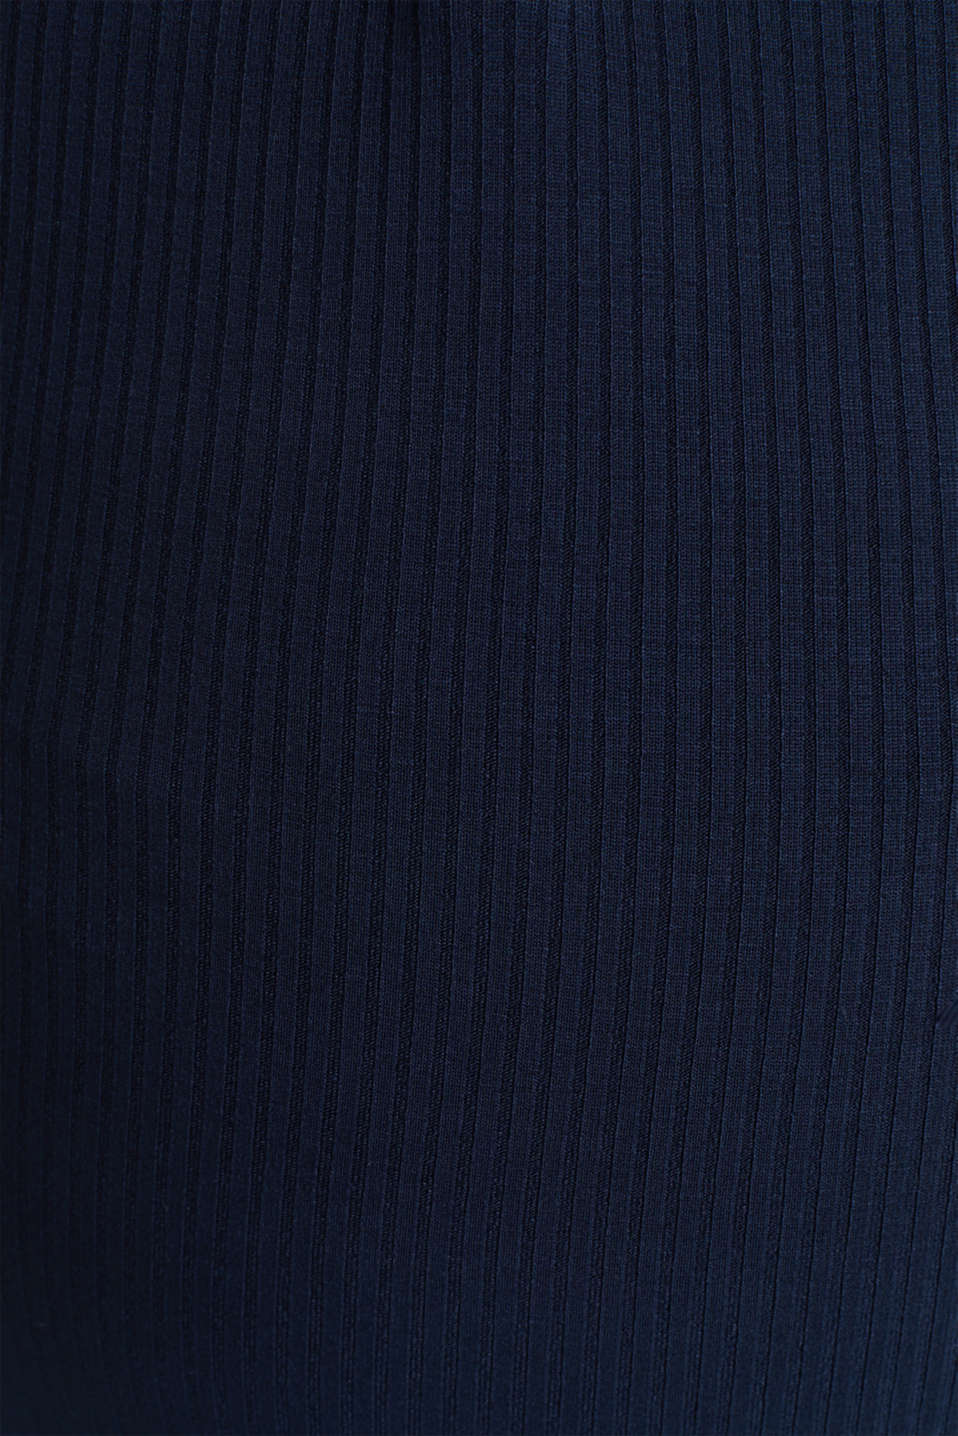 Ribbed long sleeve top with a button placket and stretch for comfort, LCNIGHT BLUE, detail image number 4